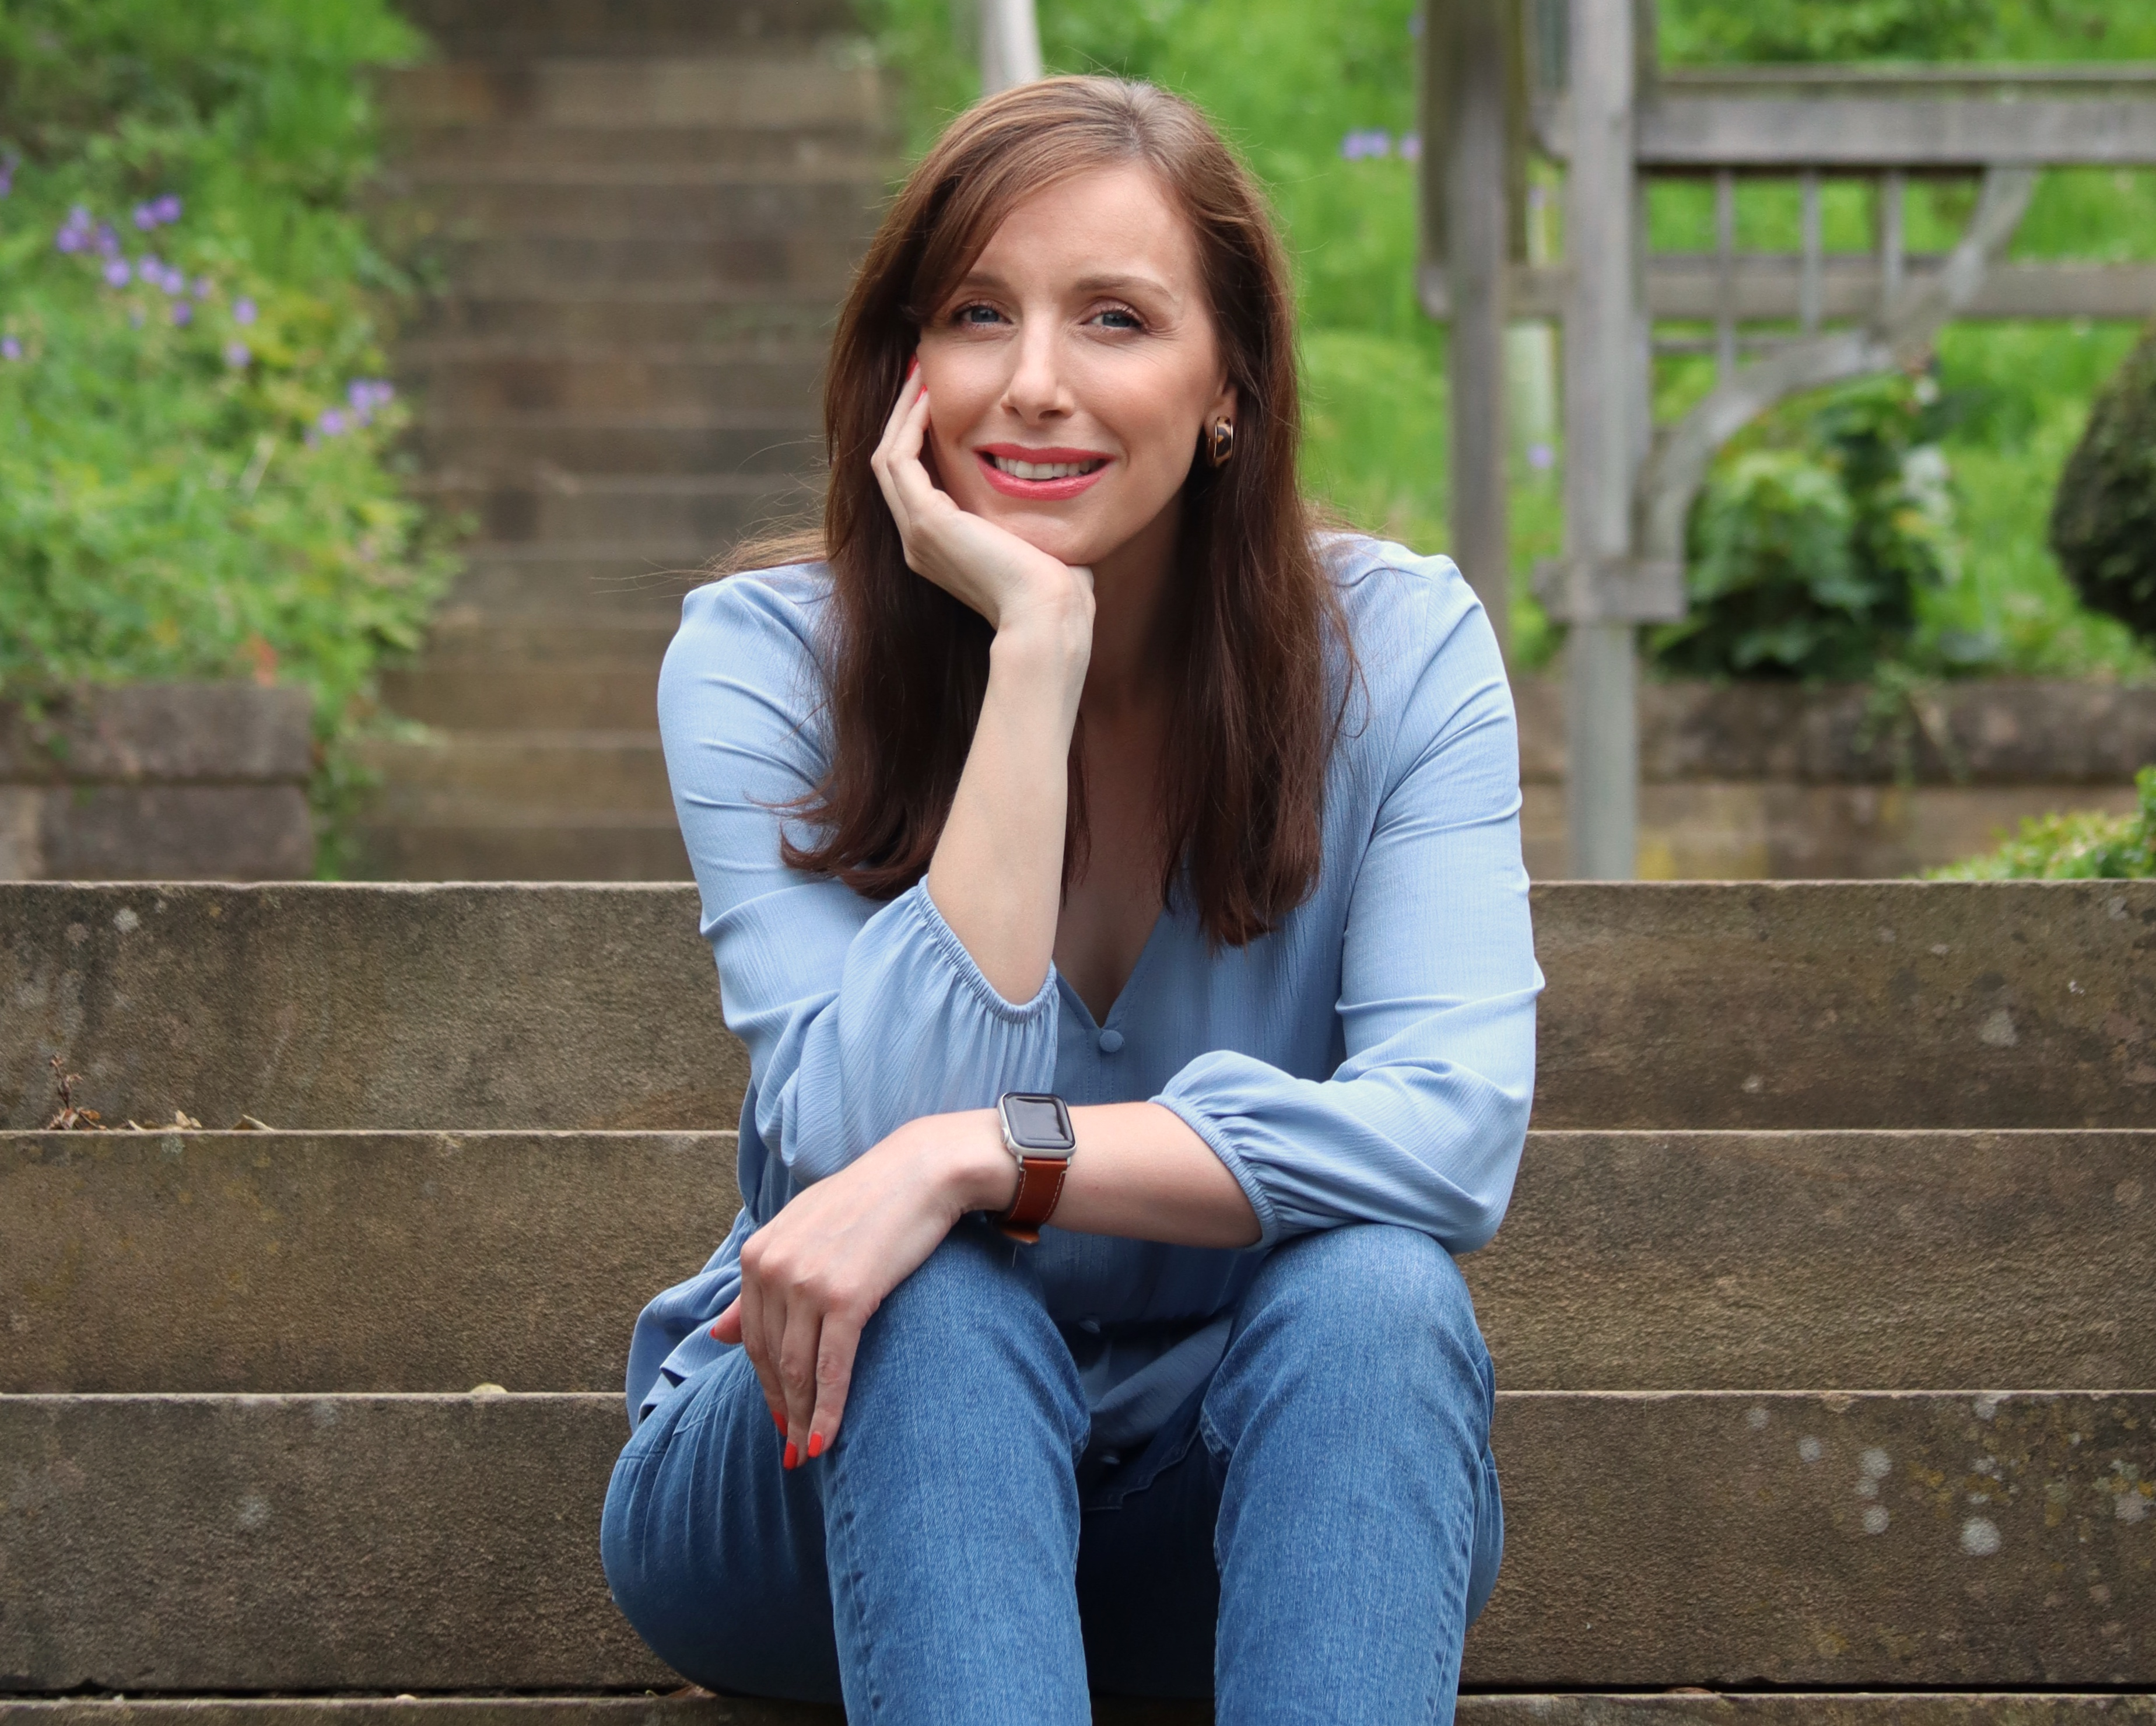 A year of survival - facing birthdays with chronic illness. Female woman sits on steps outside looking towards the camera smiling. She has brown hair and fair skin and is wearing a light blue top and blue jeans.